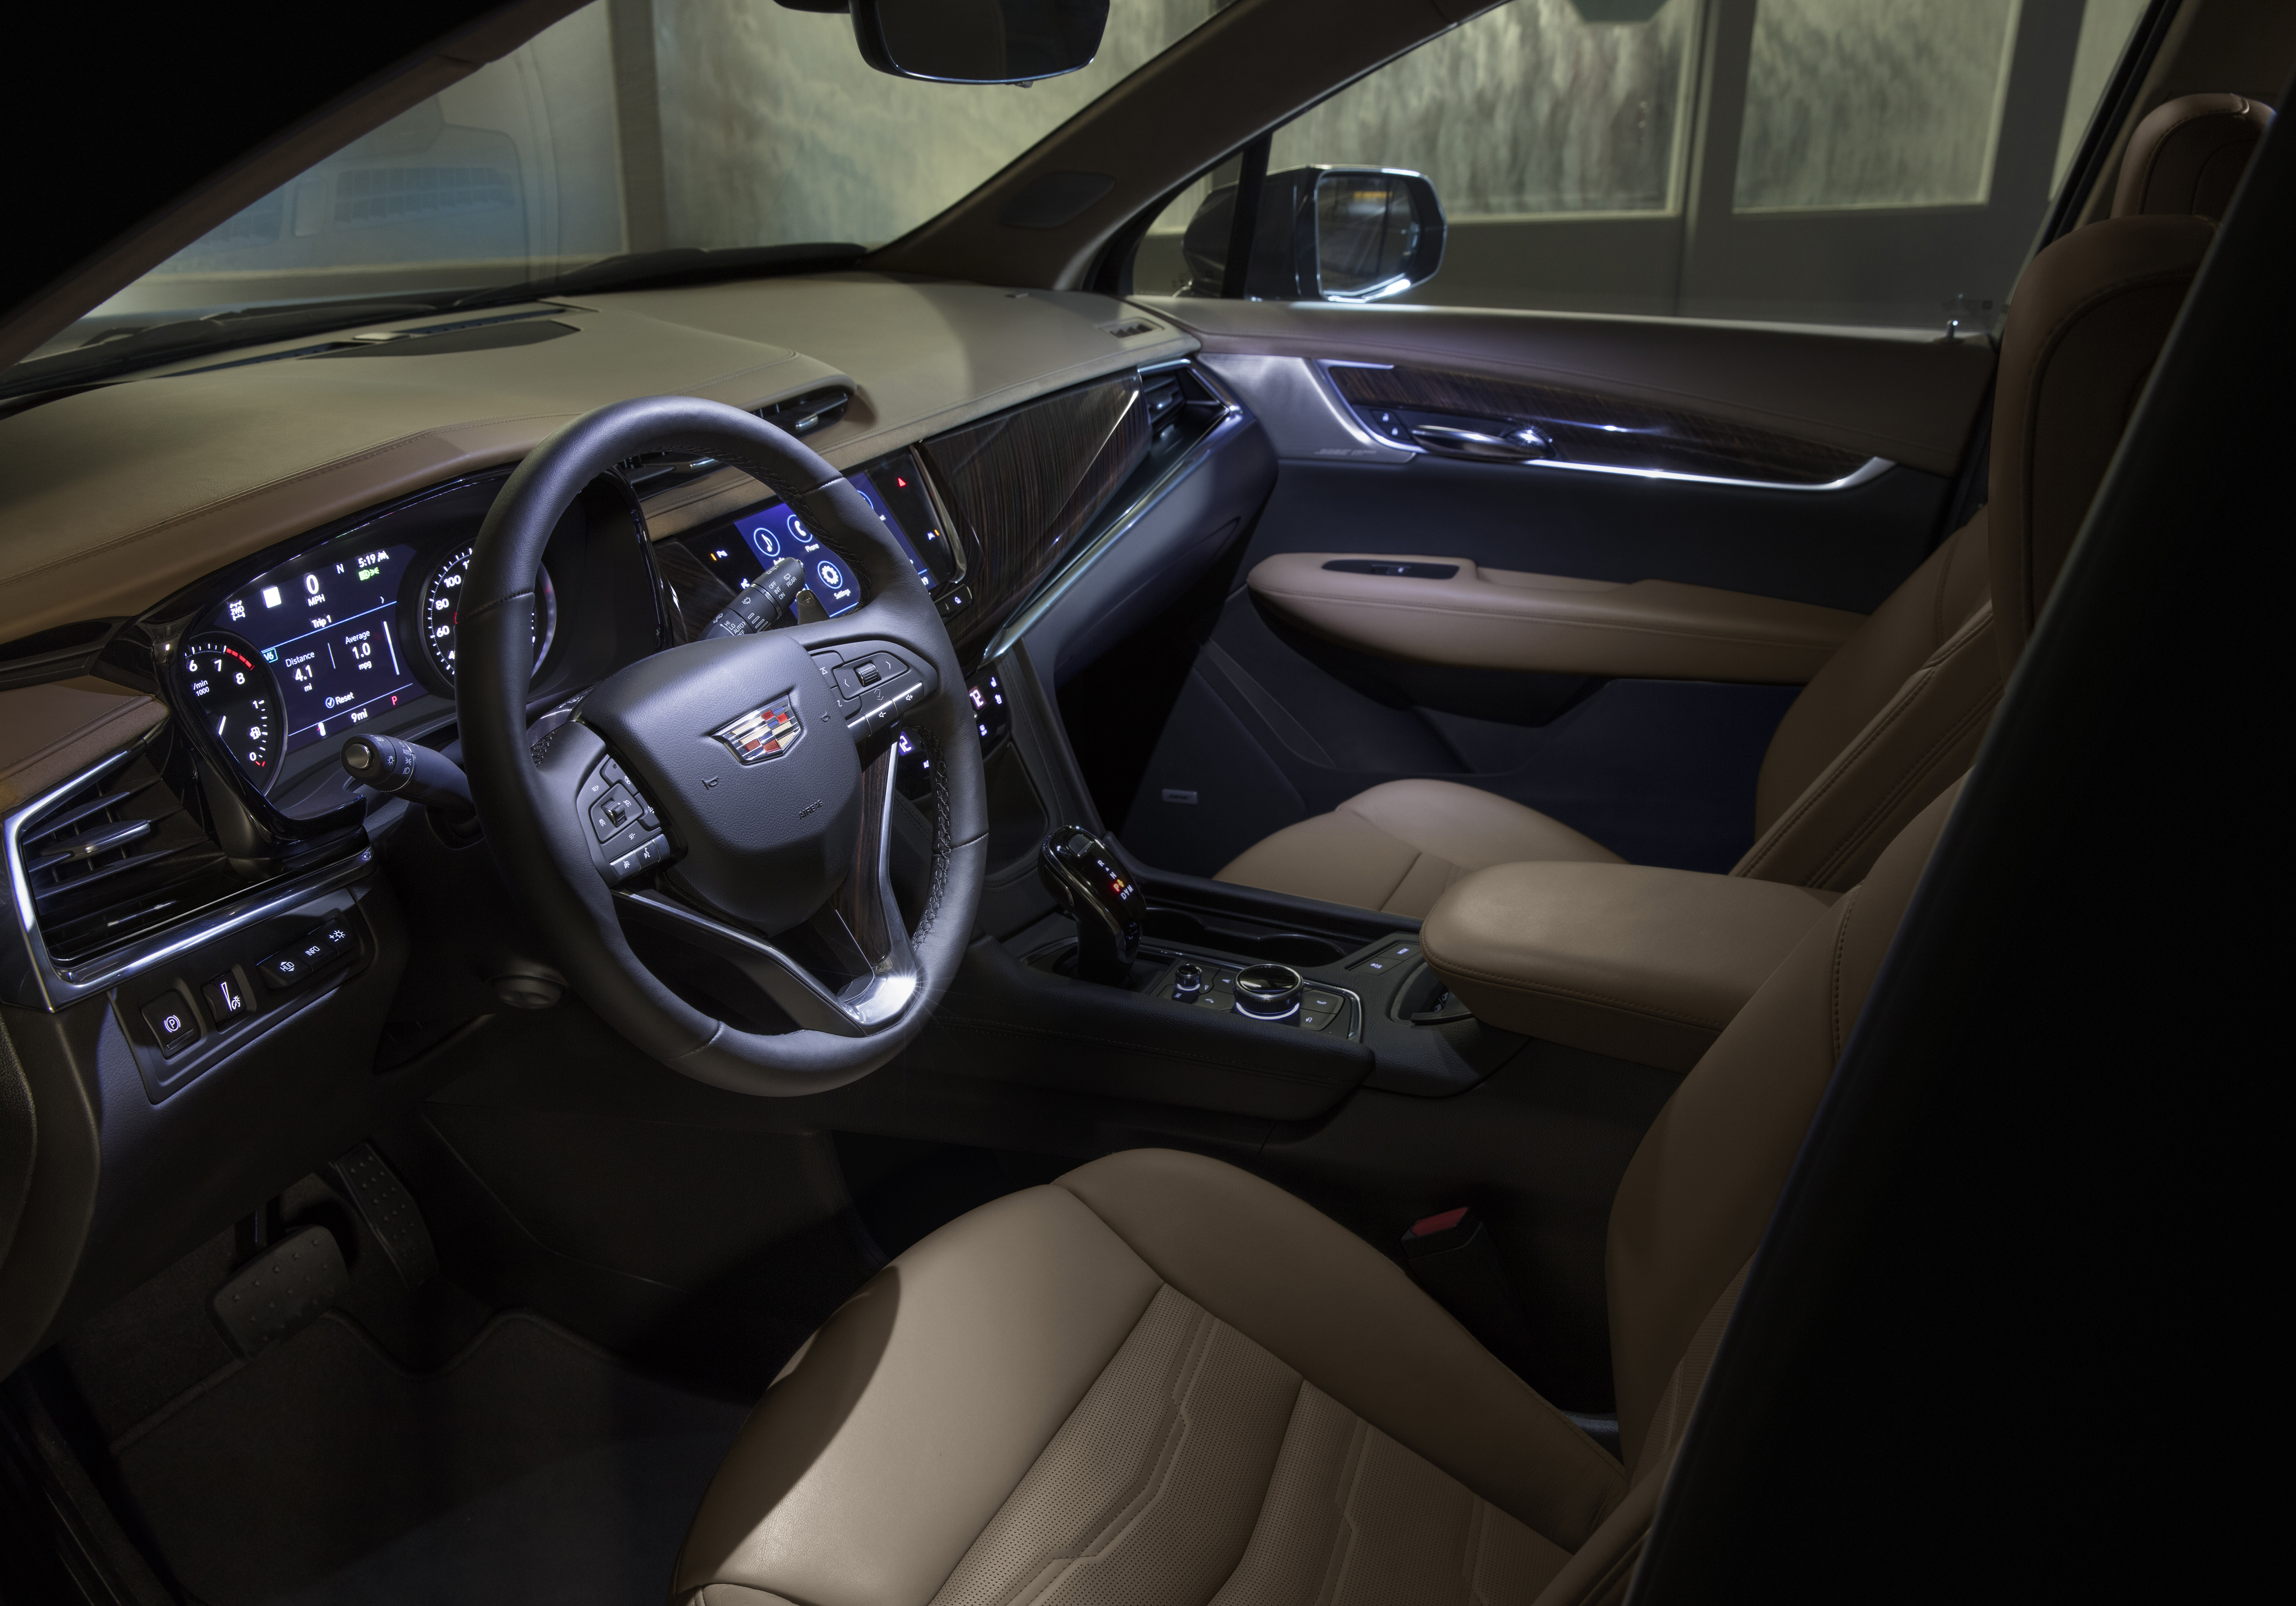 15 All New 2020 Cadillac Xt6 Interior New Concept with 2020 Cadillac Xt6 Interior